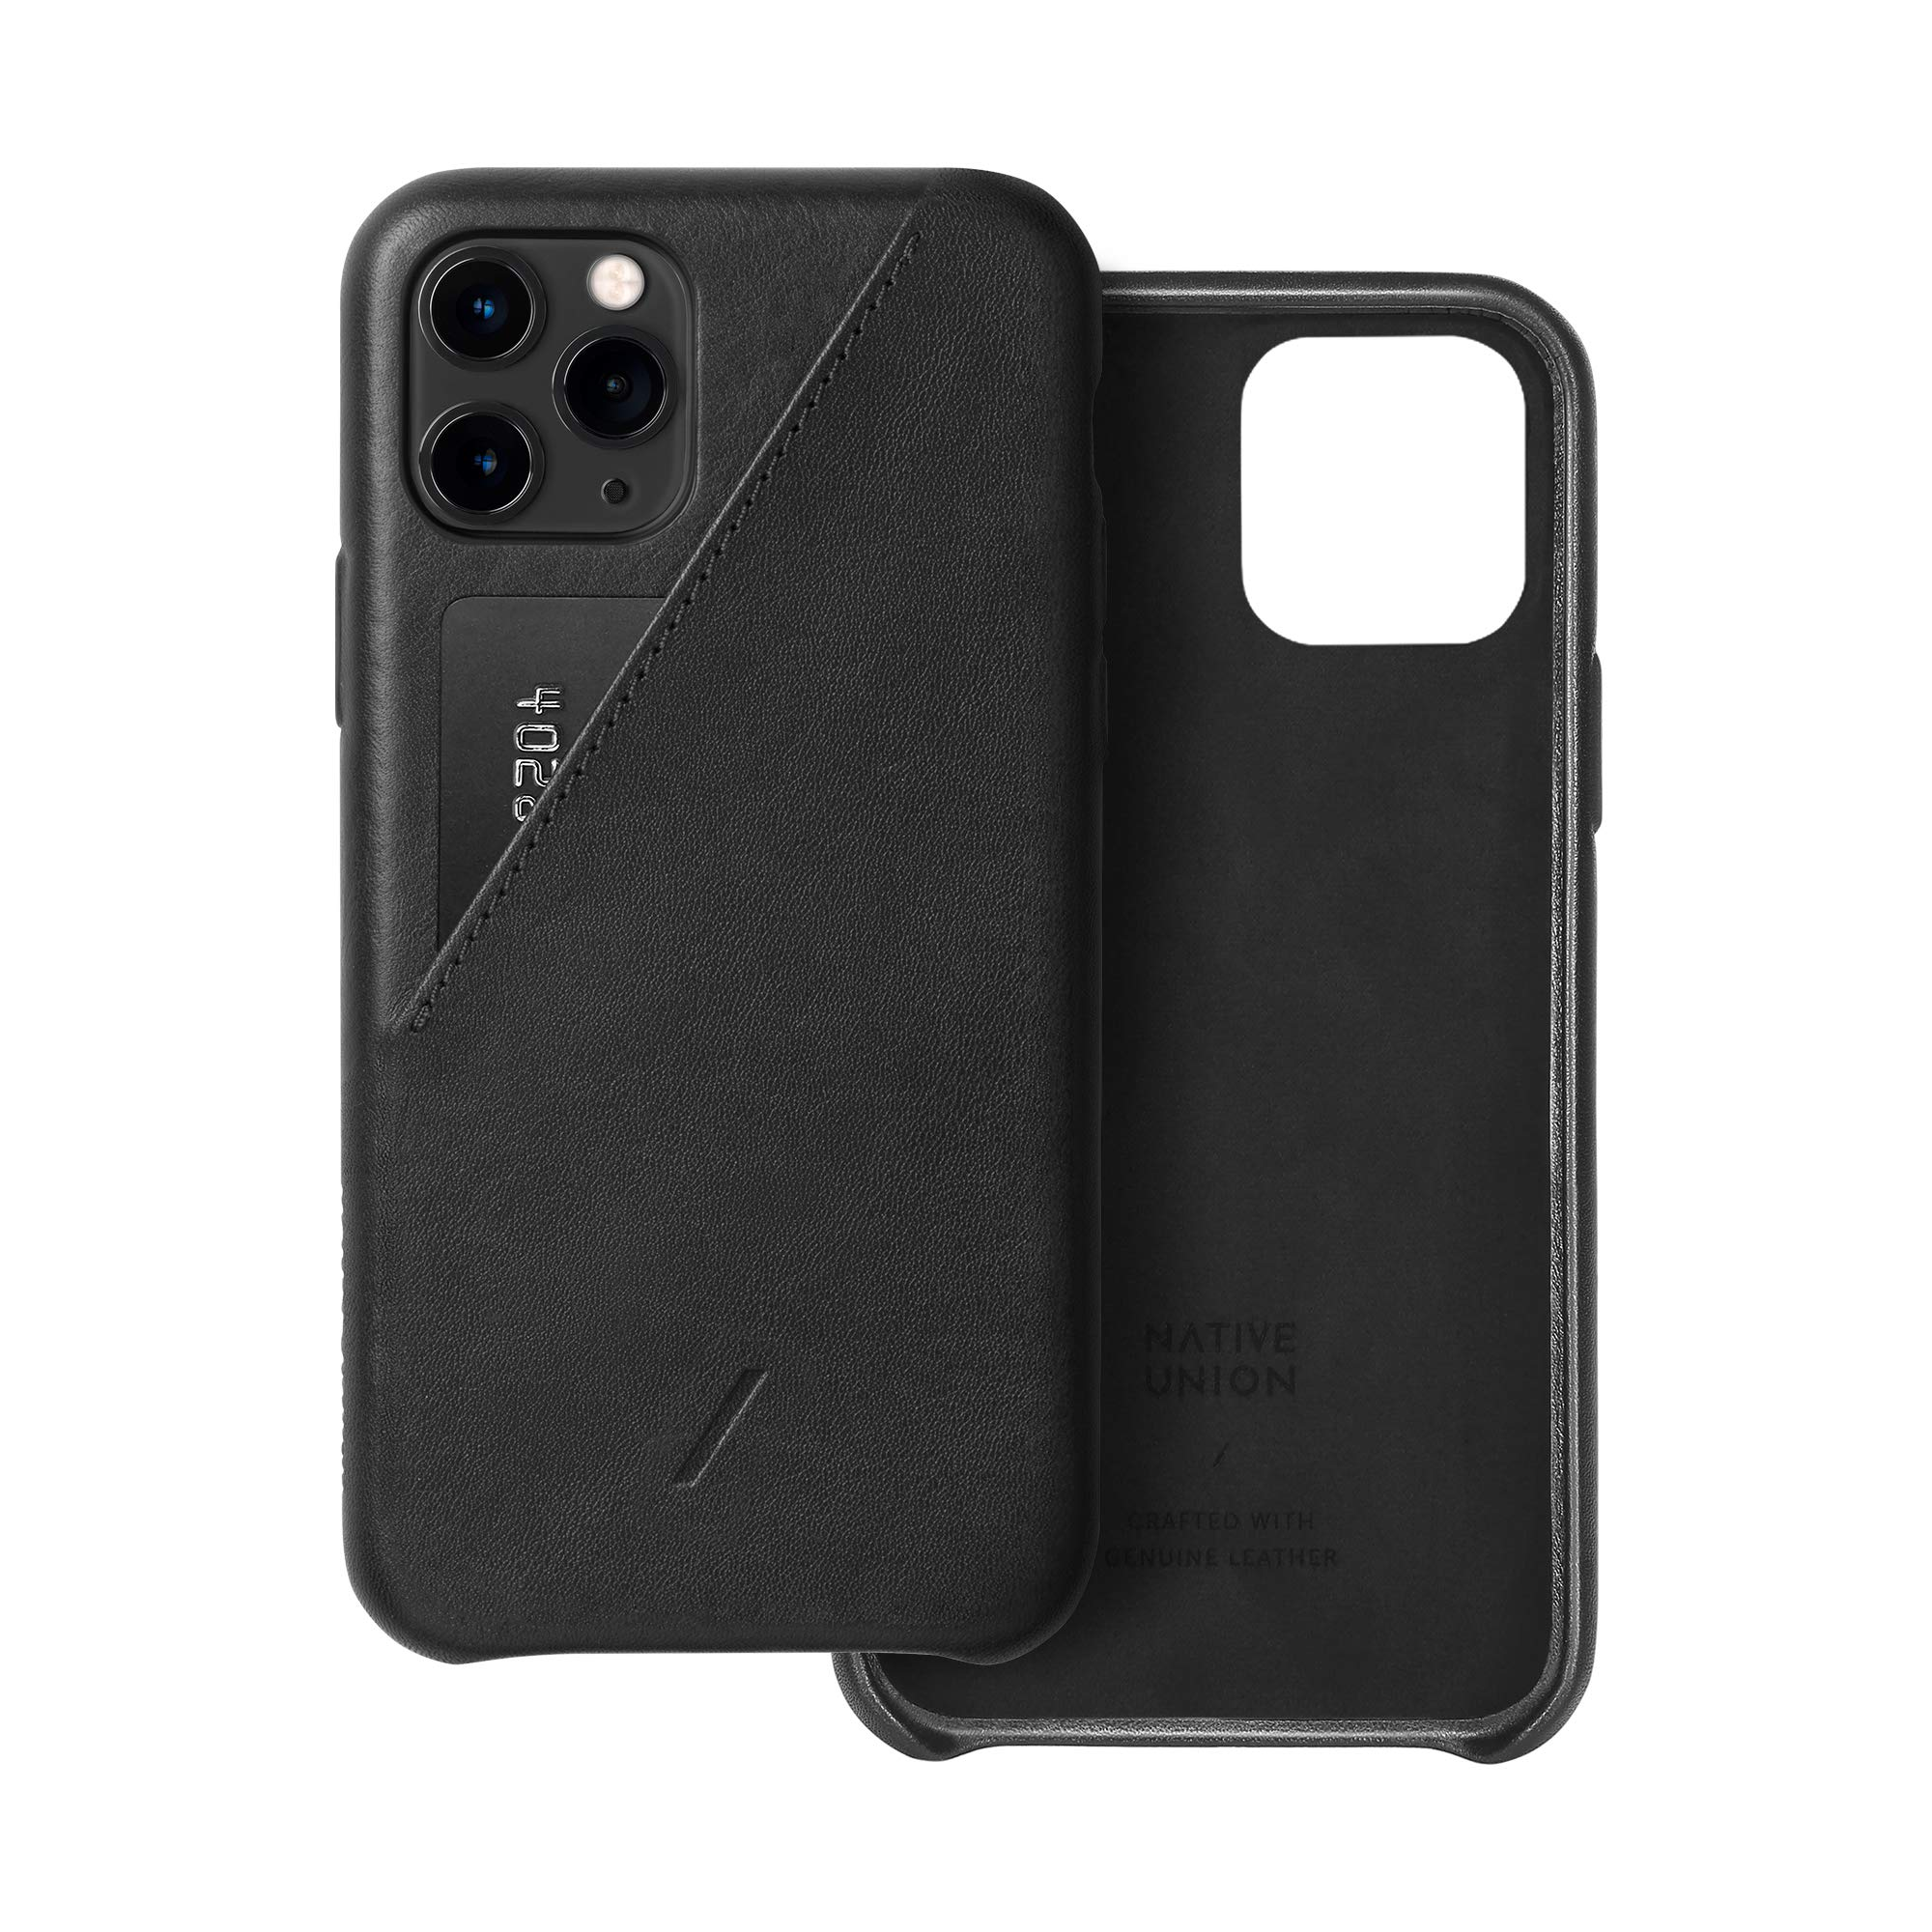 Native Union Clic Card Case - Crafted with Genuine Italian Nappa Leather Slim and Lightweight Cover with Card Holder - Compatible with iPhone 11 Pro (Black)